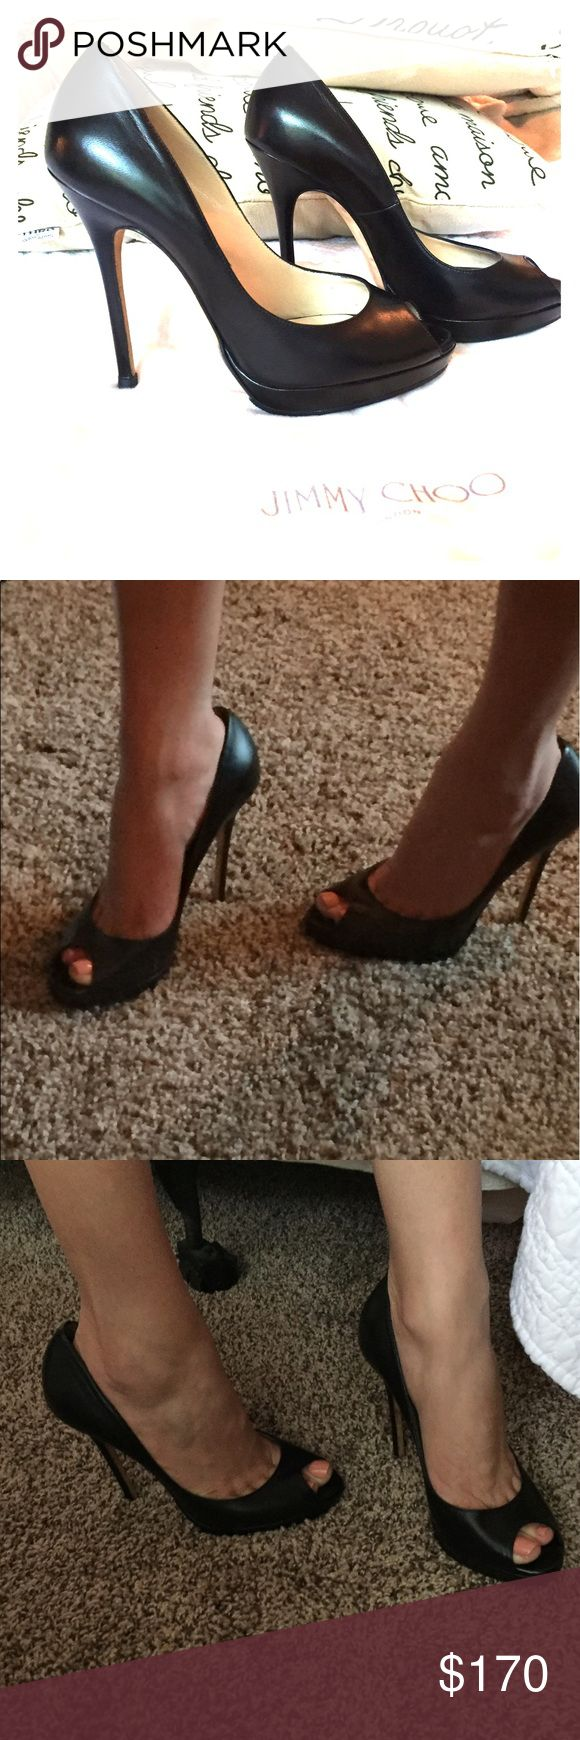 "•24 hr sale•[Jimmy Choo] peep toe pump In  EUC, I wish these fit me. I am reposhing due to size, these indeed fit true to size 7. Black leather open toe heels, perfect for work or going out on a date! I had them taken to a cobbler to have resoled and the heel caps recapped and the shoes are nice and clean. There is a small scuff on the front toe area shown in the photo but you can't notice. About a 4"" heel. Comes with dust bag. Jimmy Choo Shoes Heels"